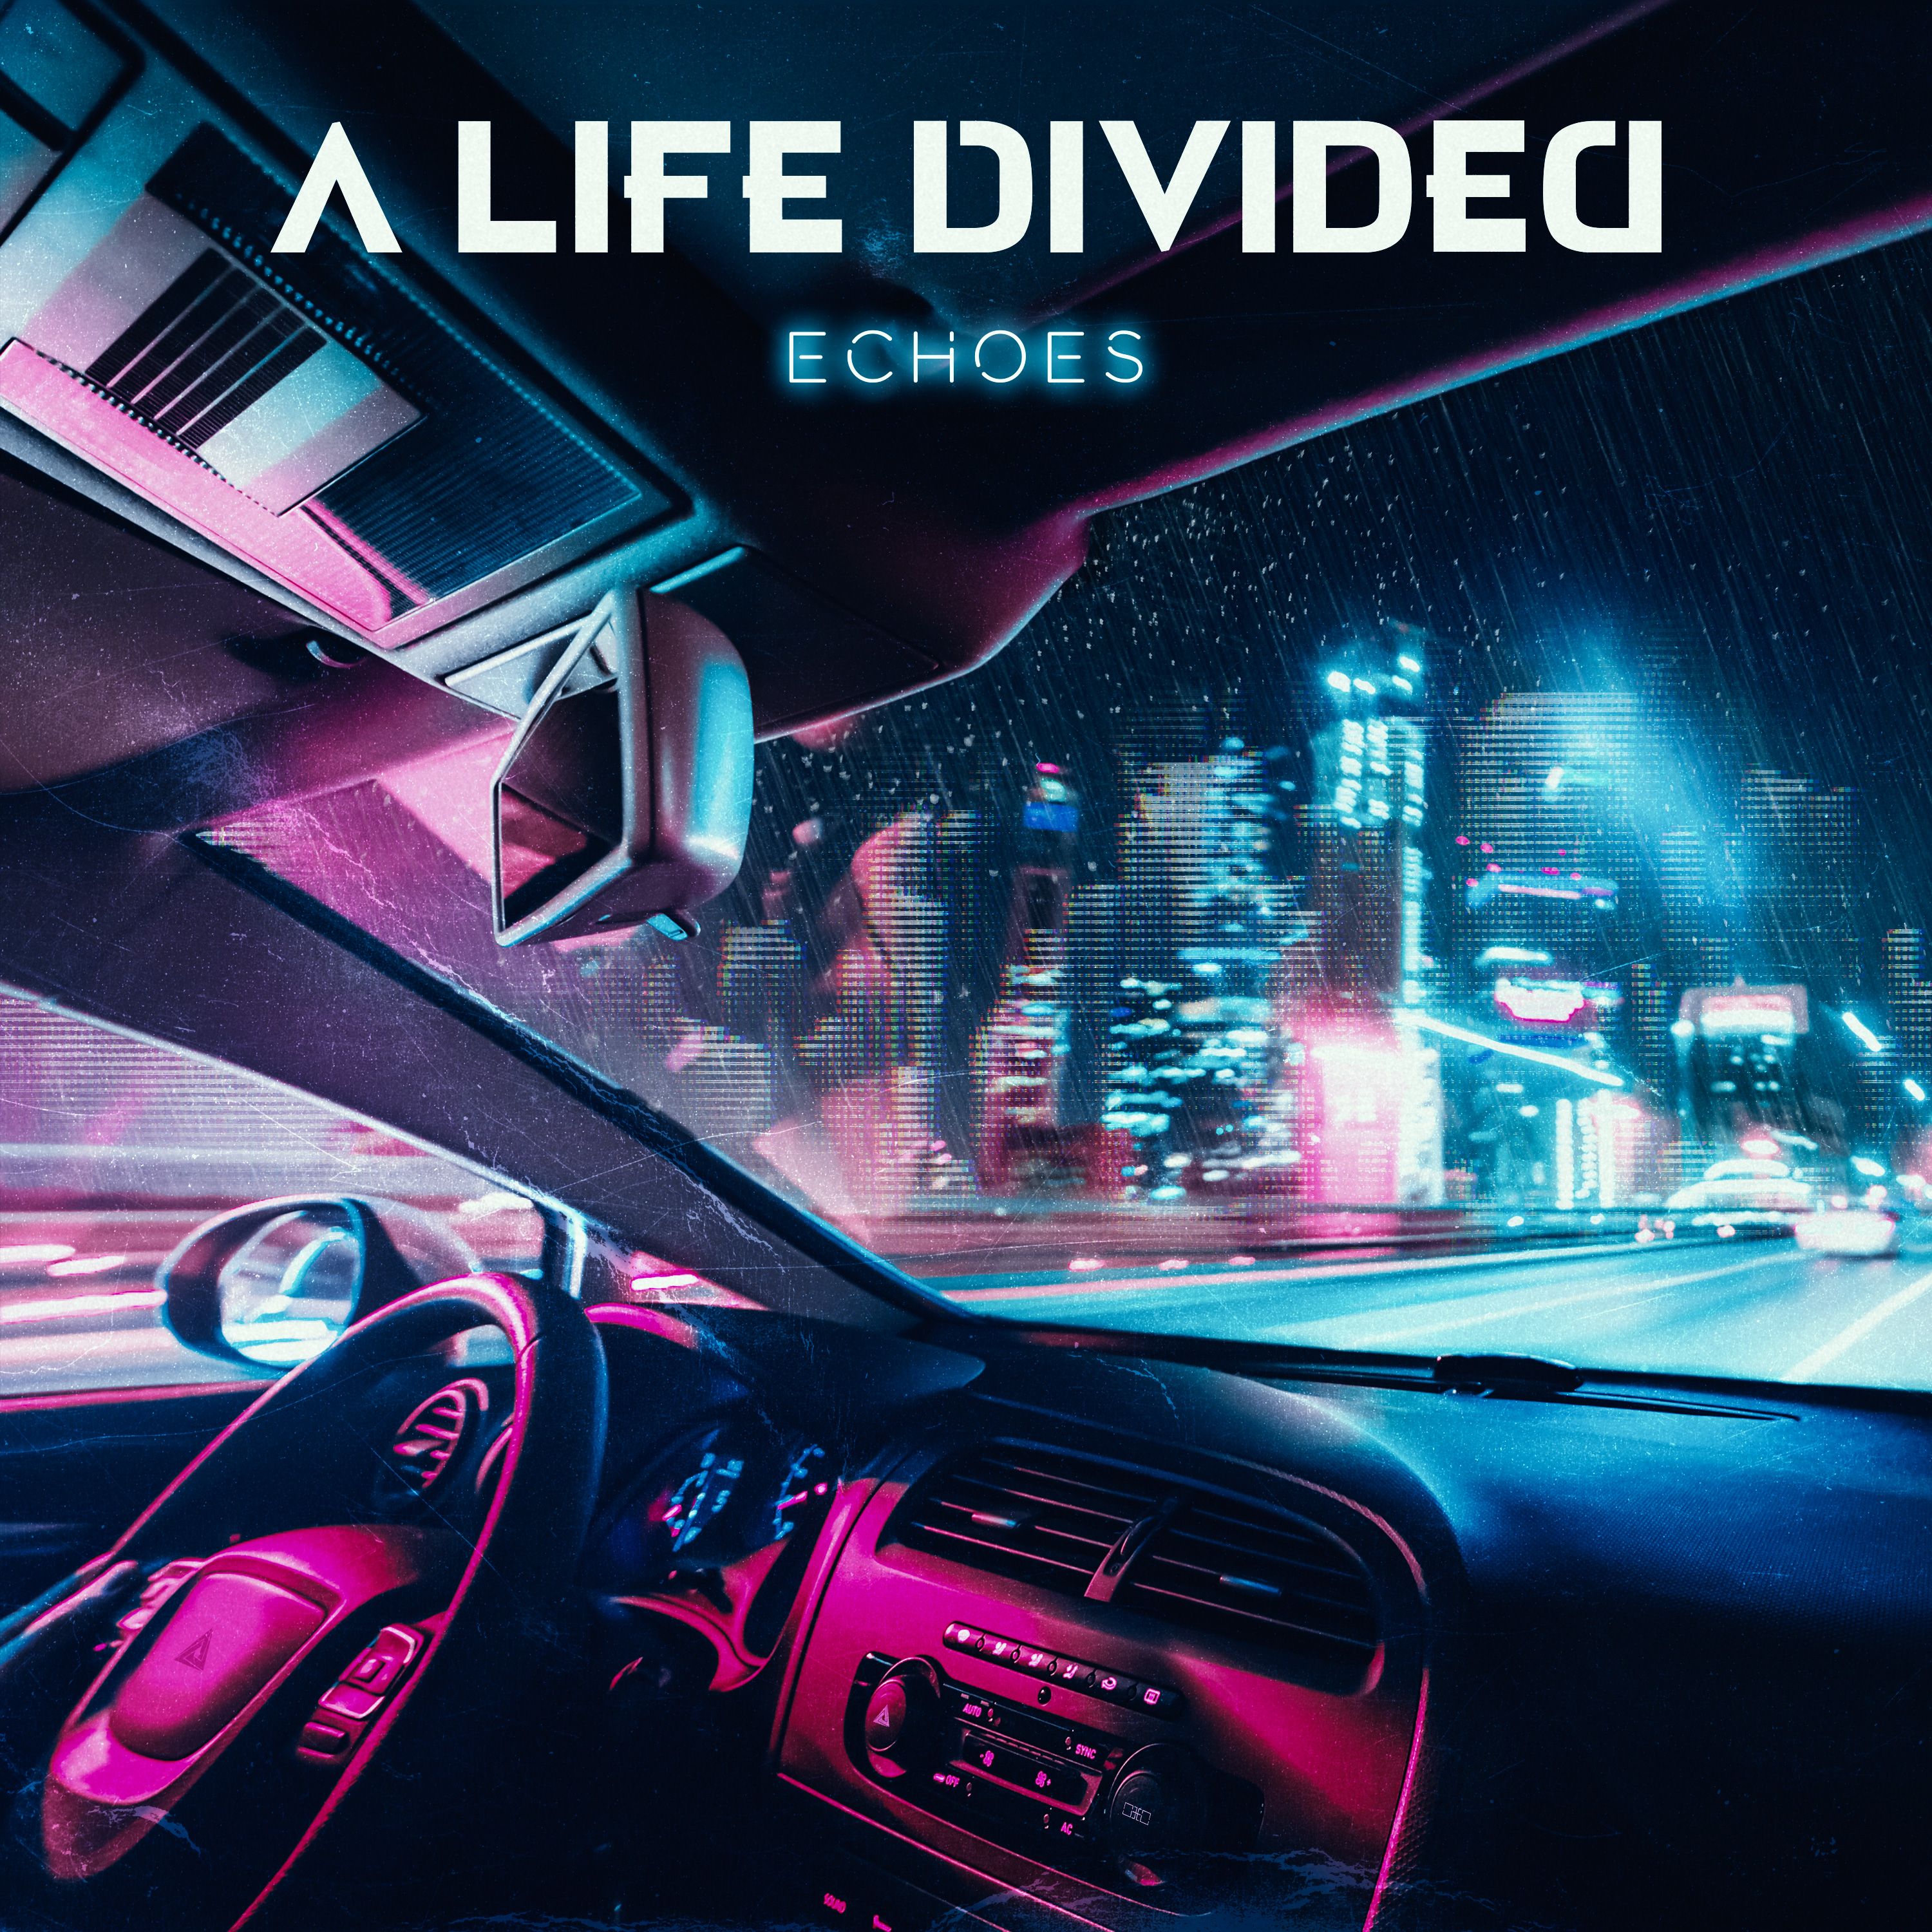 a-life-divided-neues-album-echoes-und-tour